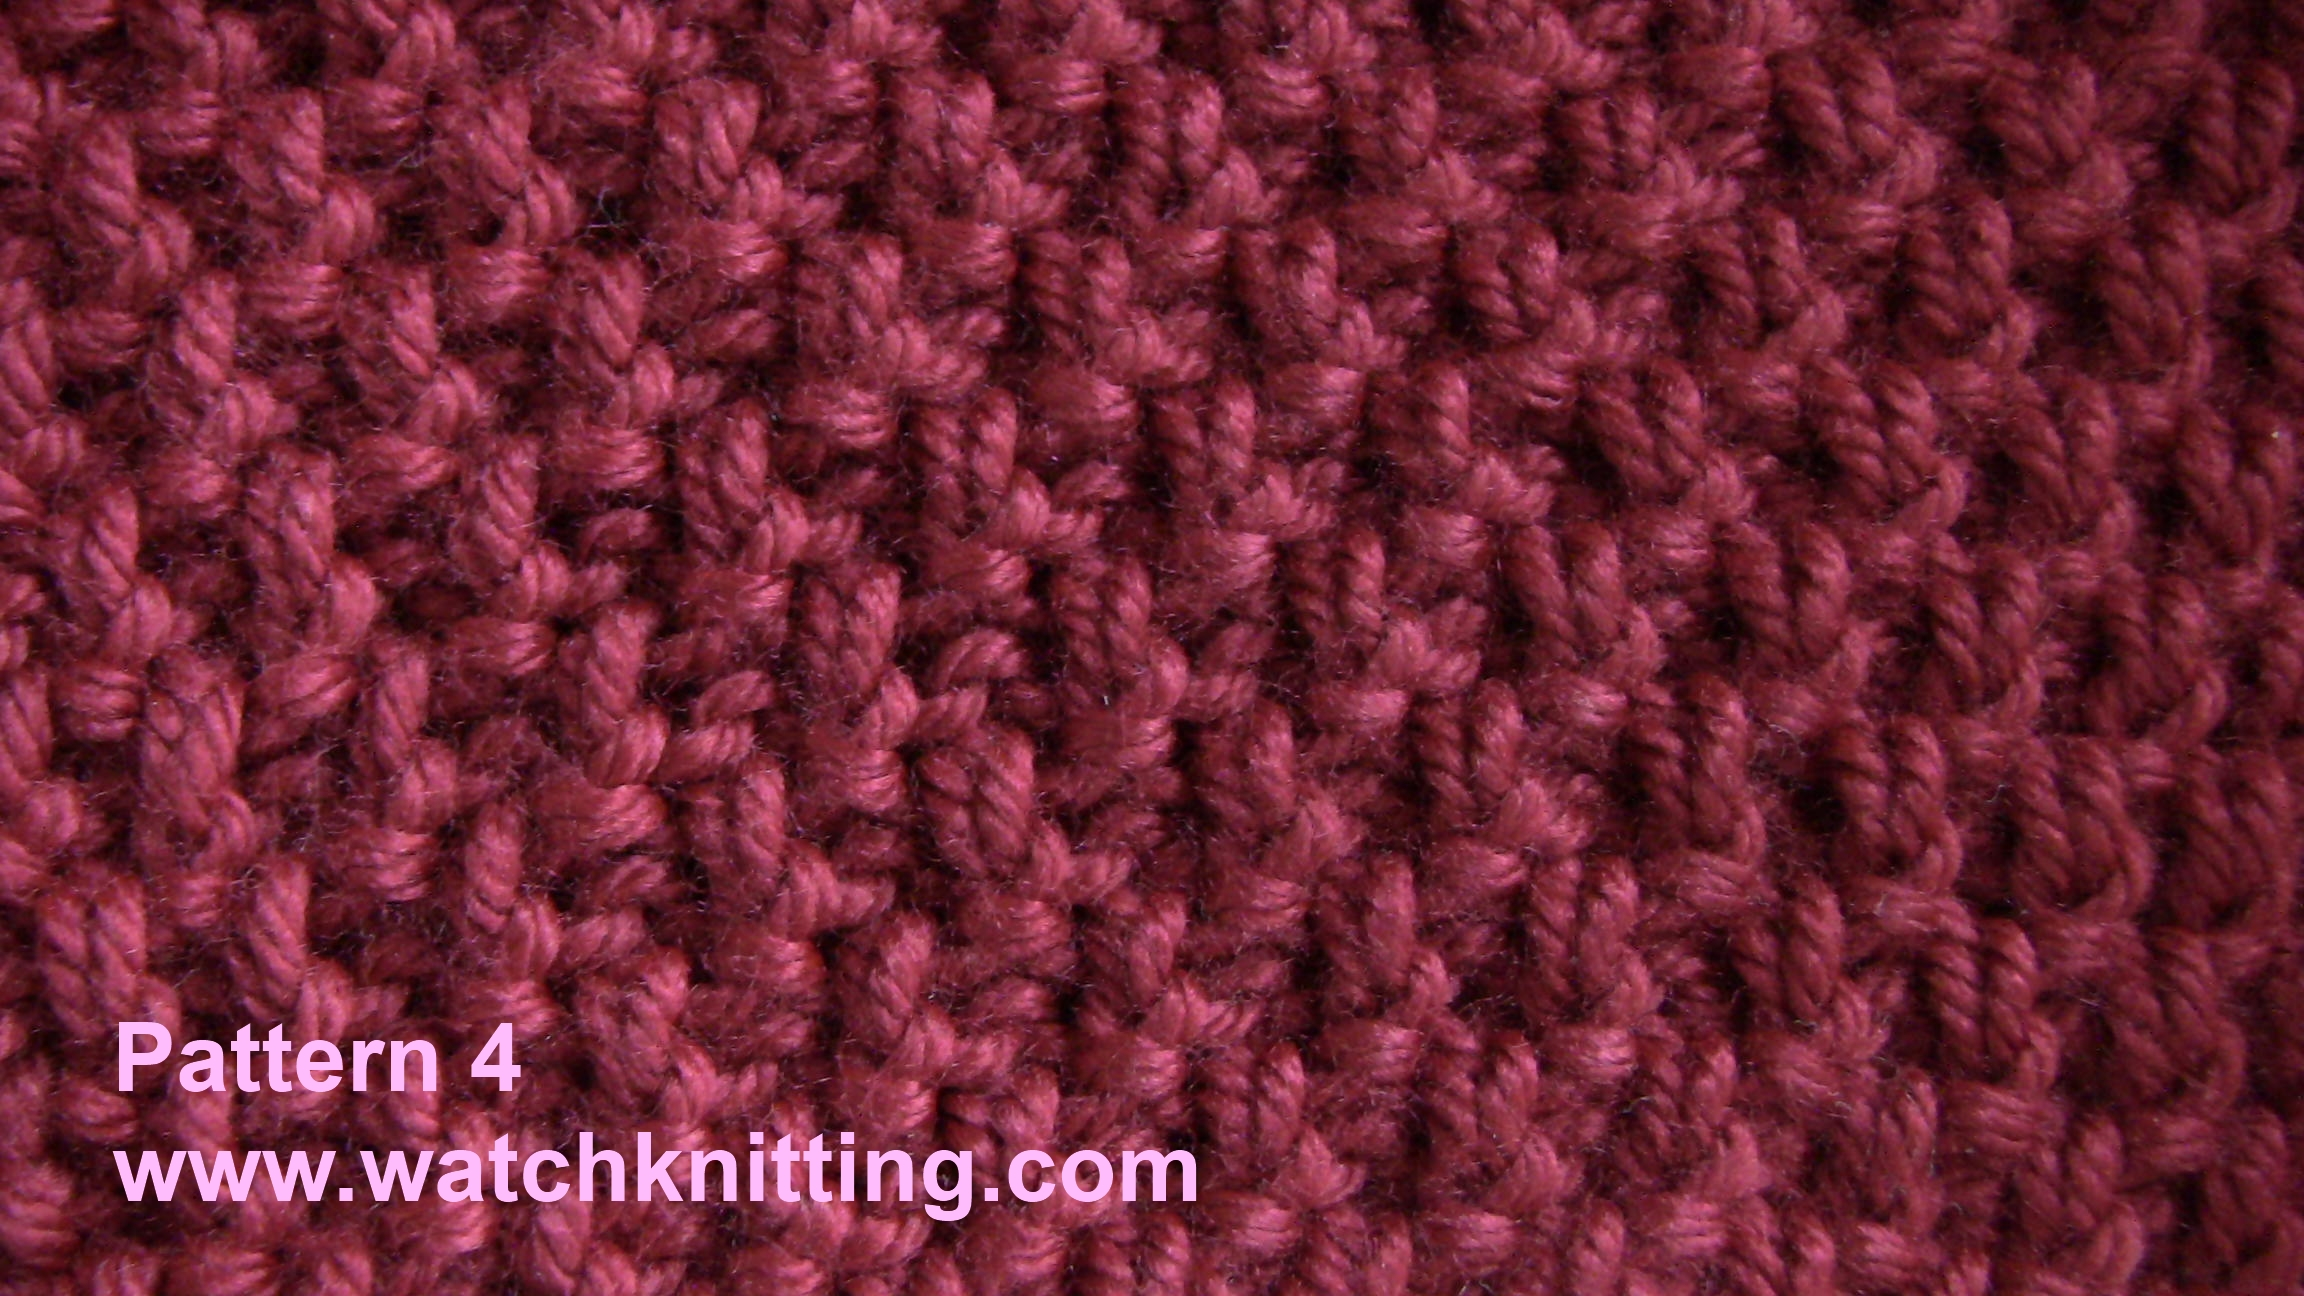 Simple Knitting Patterns : Pattern-4-Simple-Knitting-Patterns-www.watchknitting.com_.jpg